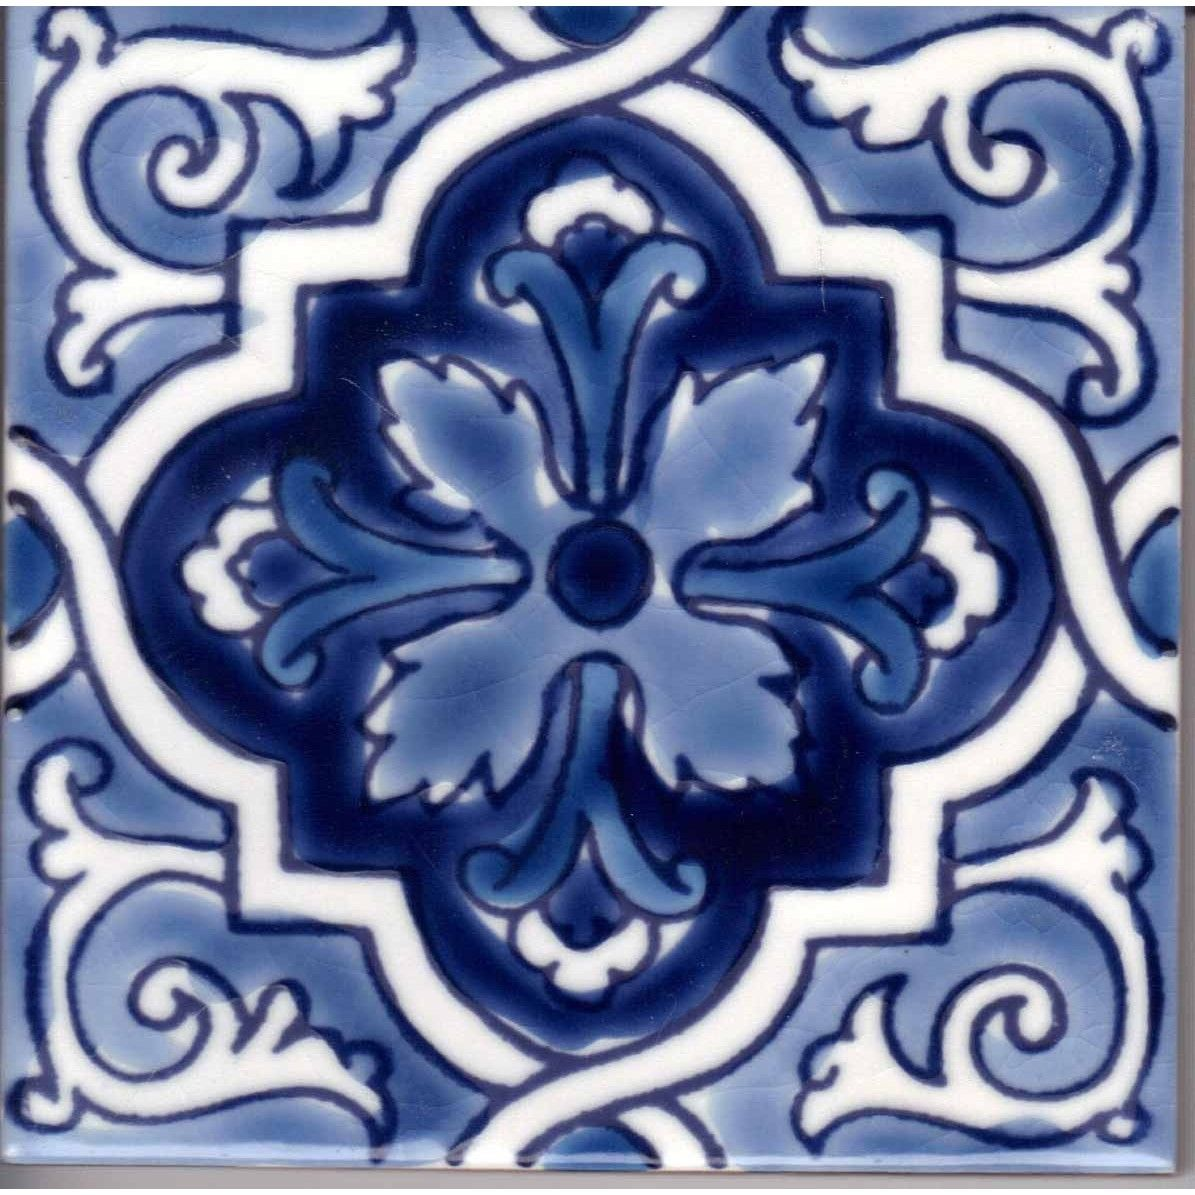 San Diego Blue Handpainted Ceramic Tile Hand Painted Ceramics Ceramic Tiles Painting Ceramic Tiles